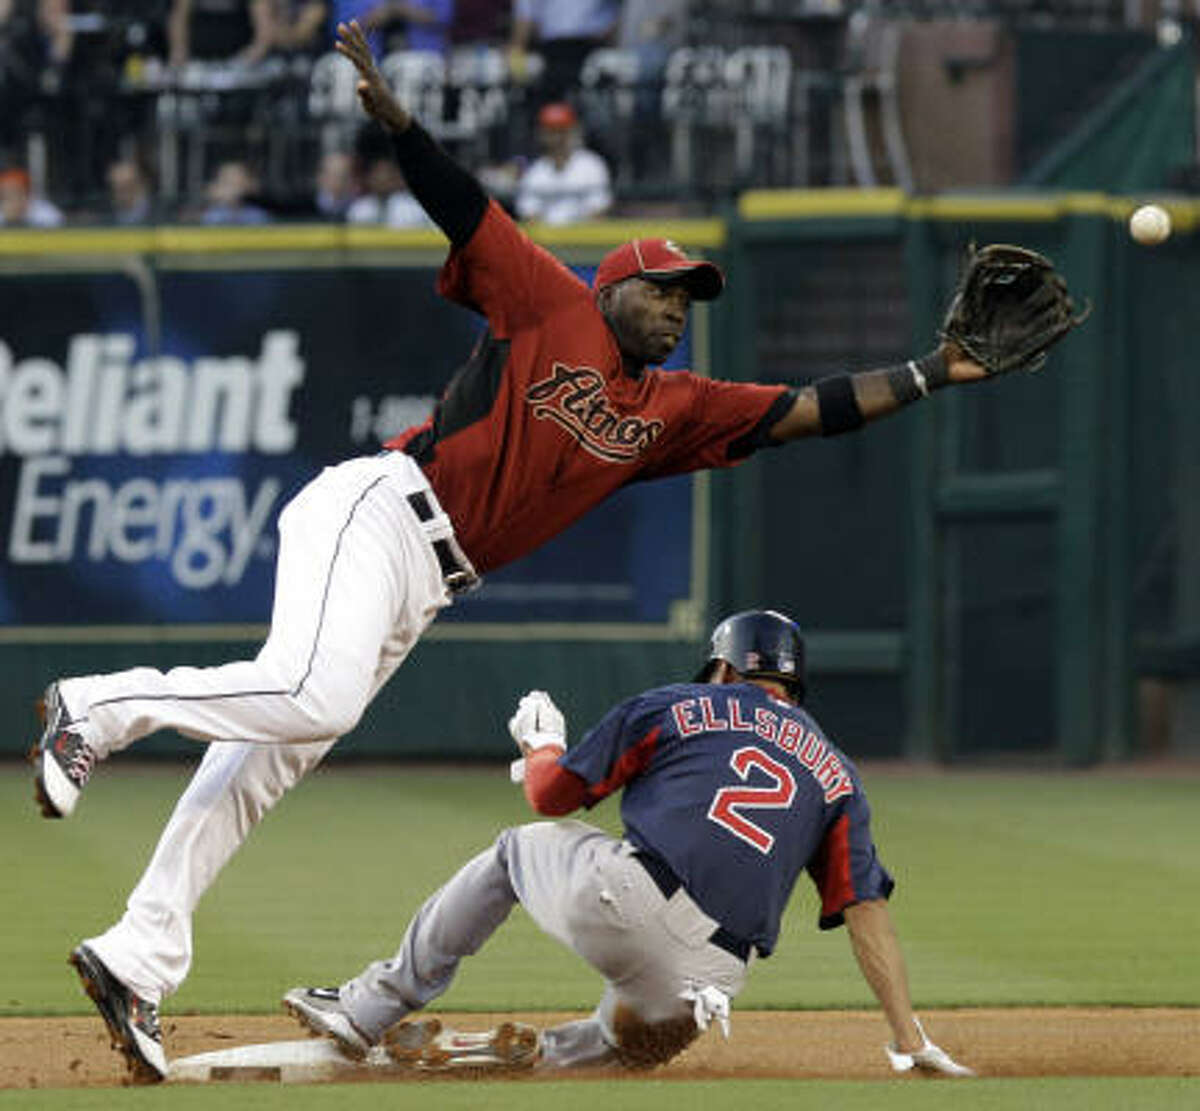 Astros second baseman Bill Hall, left, cannot get to the ball in time for an out on Jacoby Ellsbury (2) for a steal.